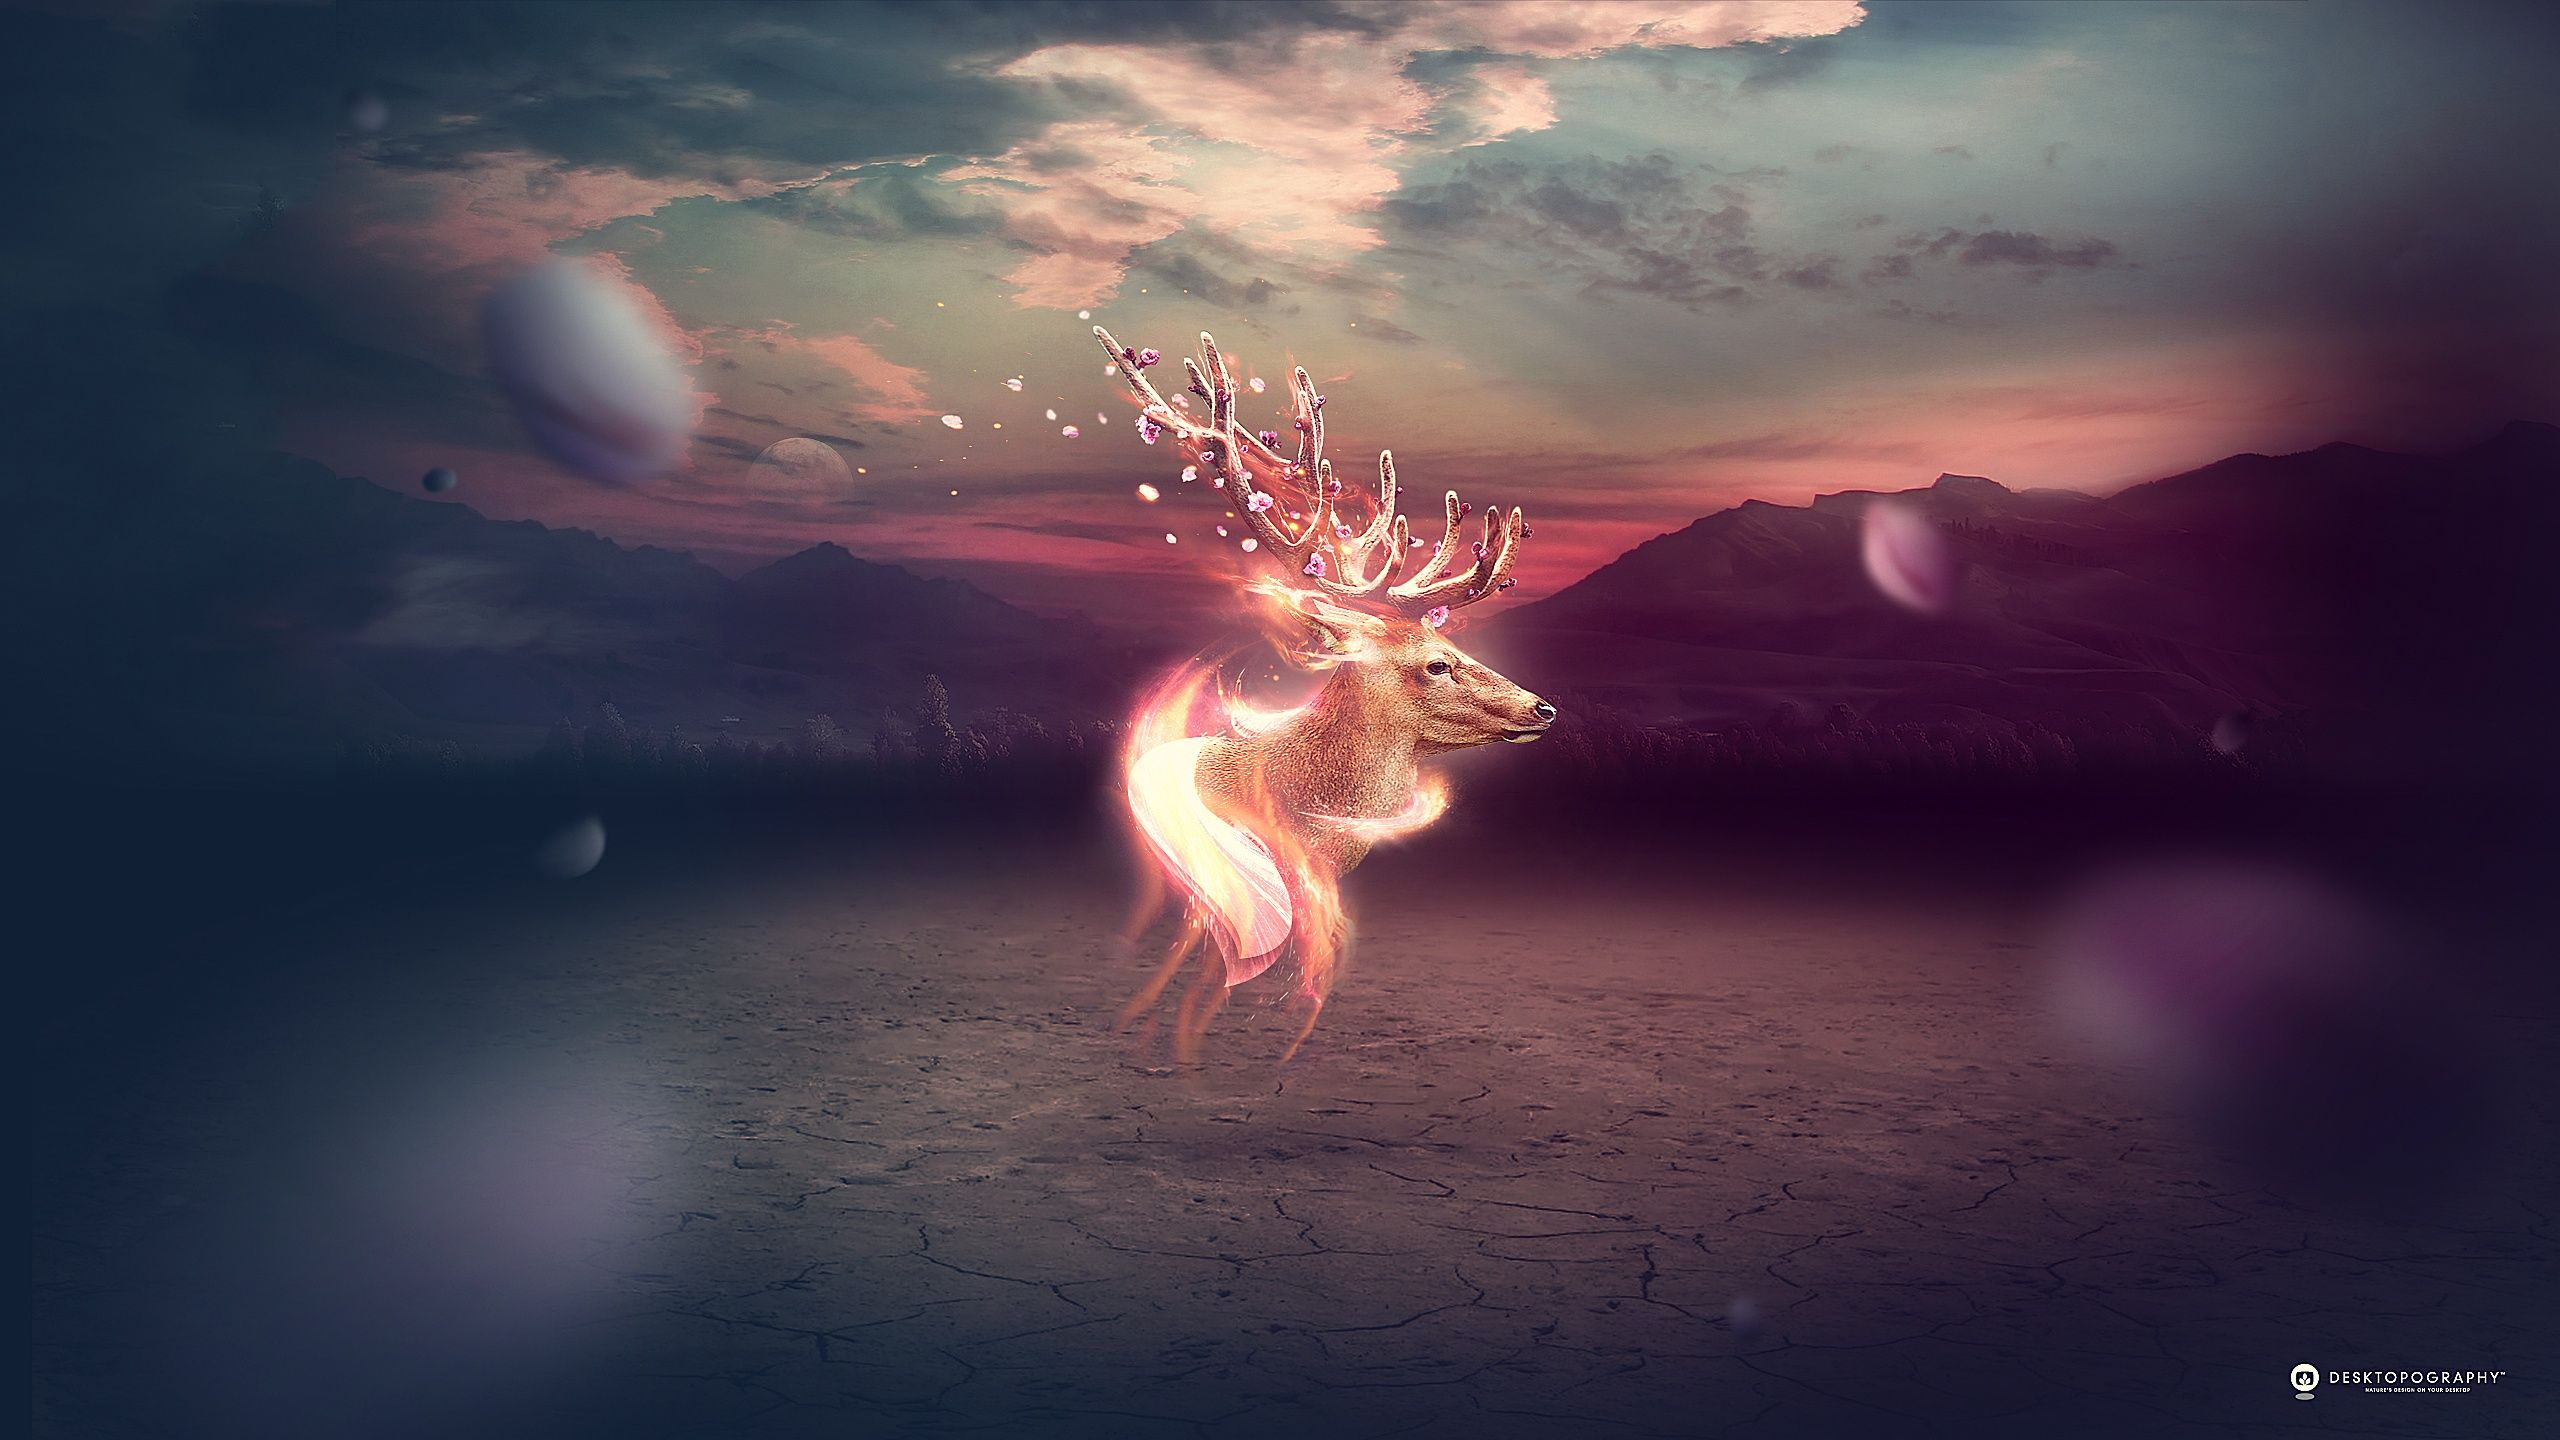 Deer Wallpaper Pictures Deer Backgrounds For PC HD Wonderful